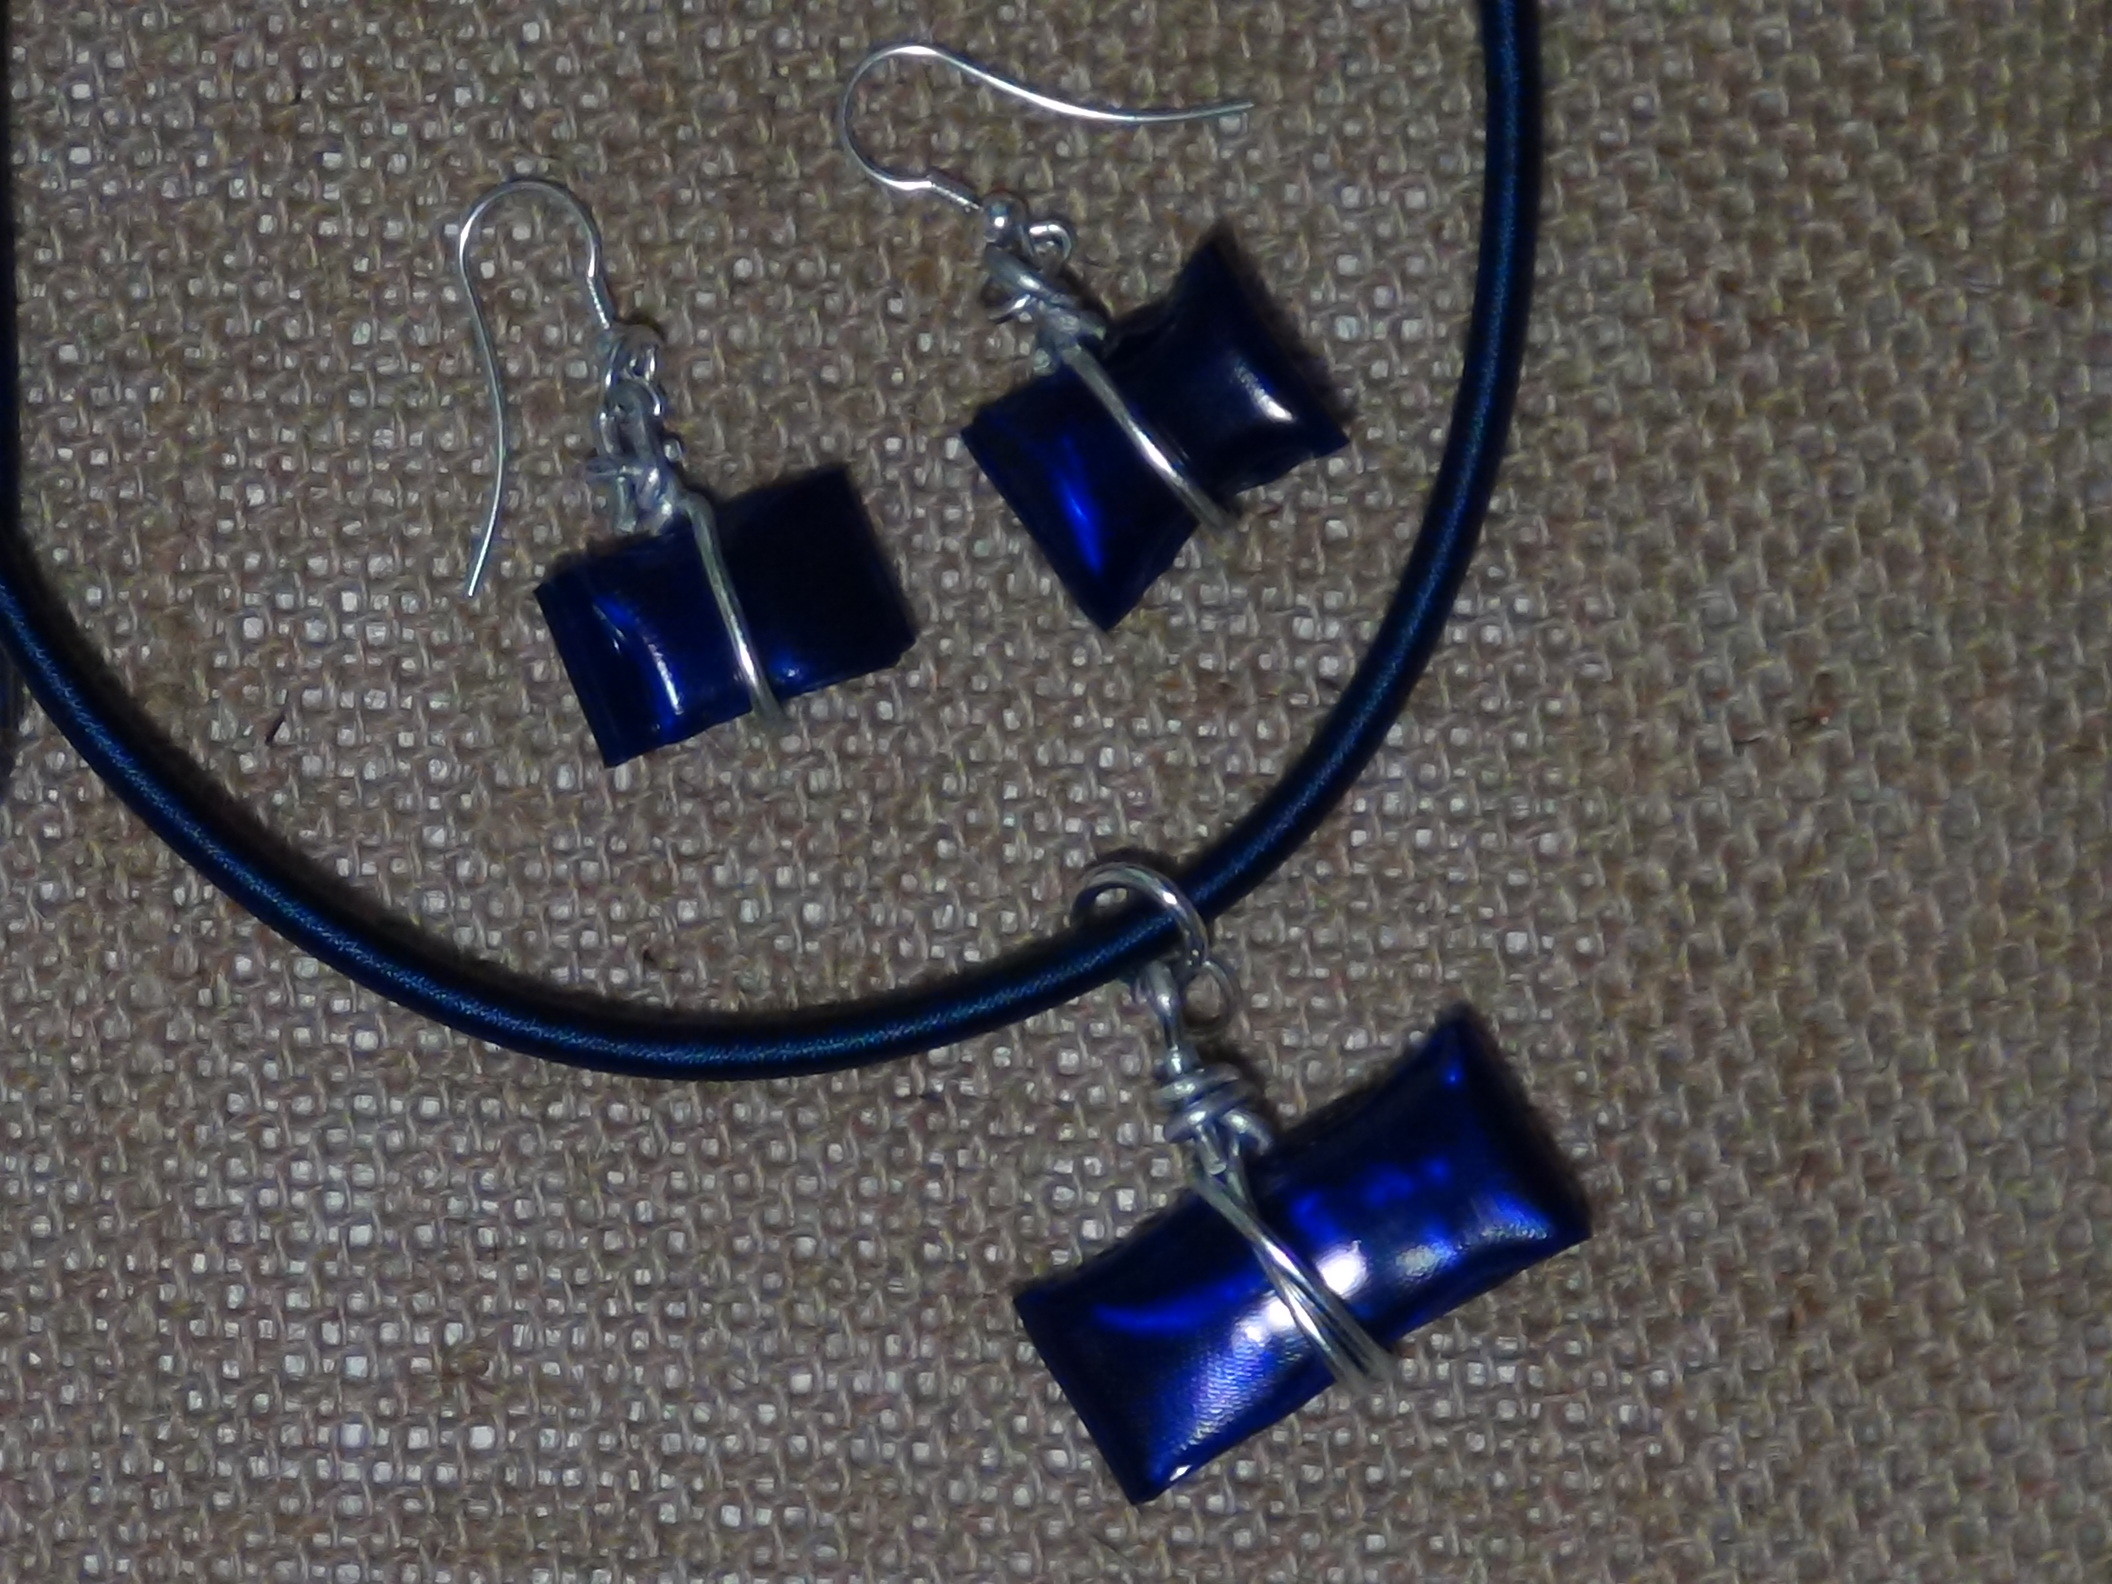 Bisutería realizada con botellas de plástico pet - Jewelry made out of recycled plastic bottles